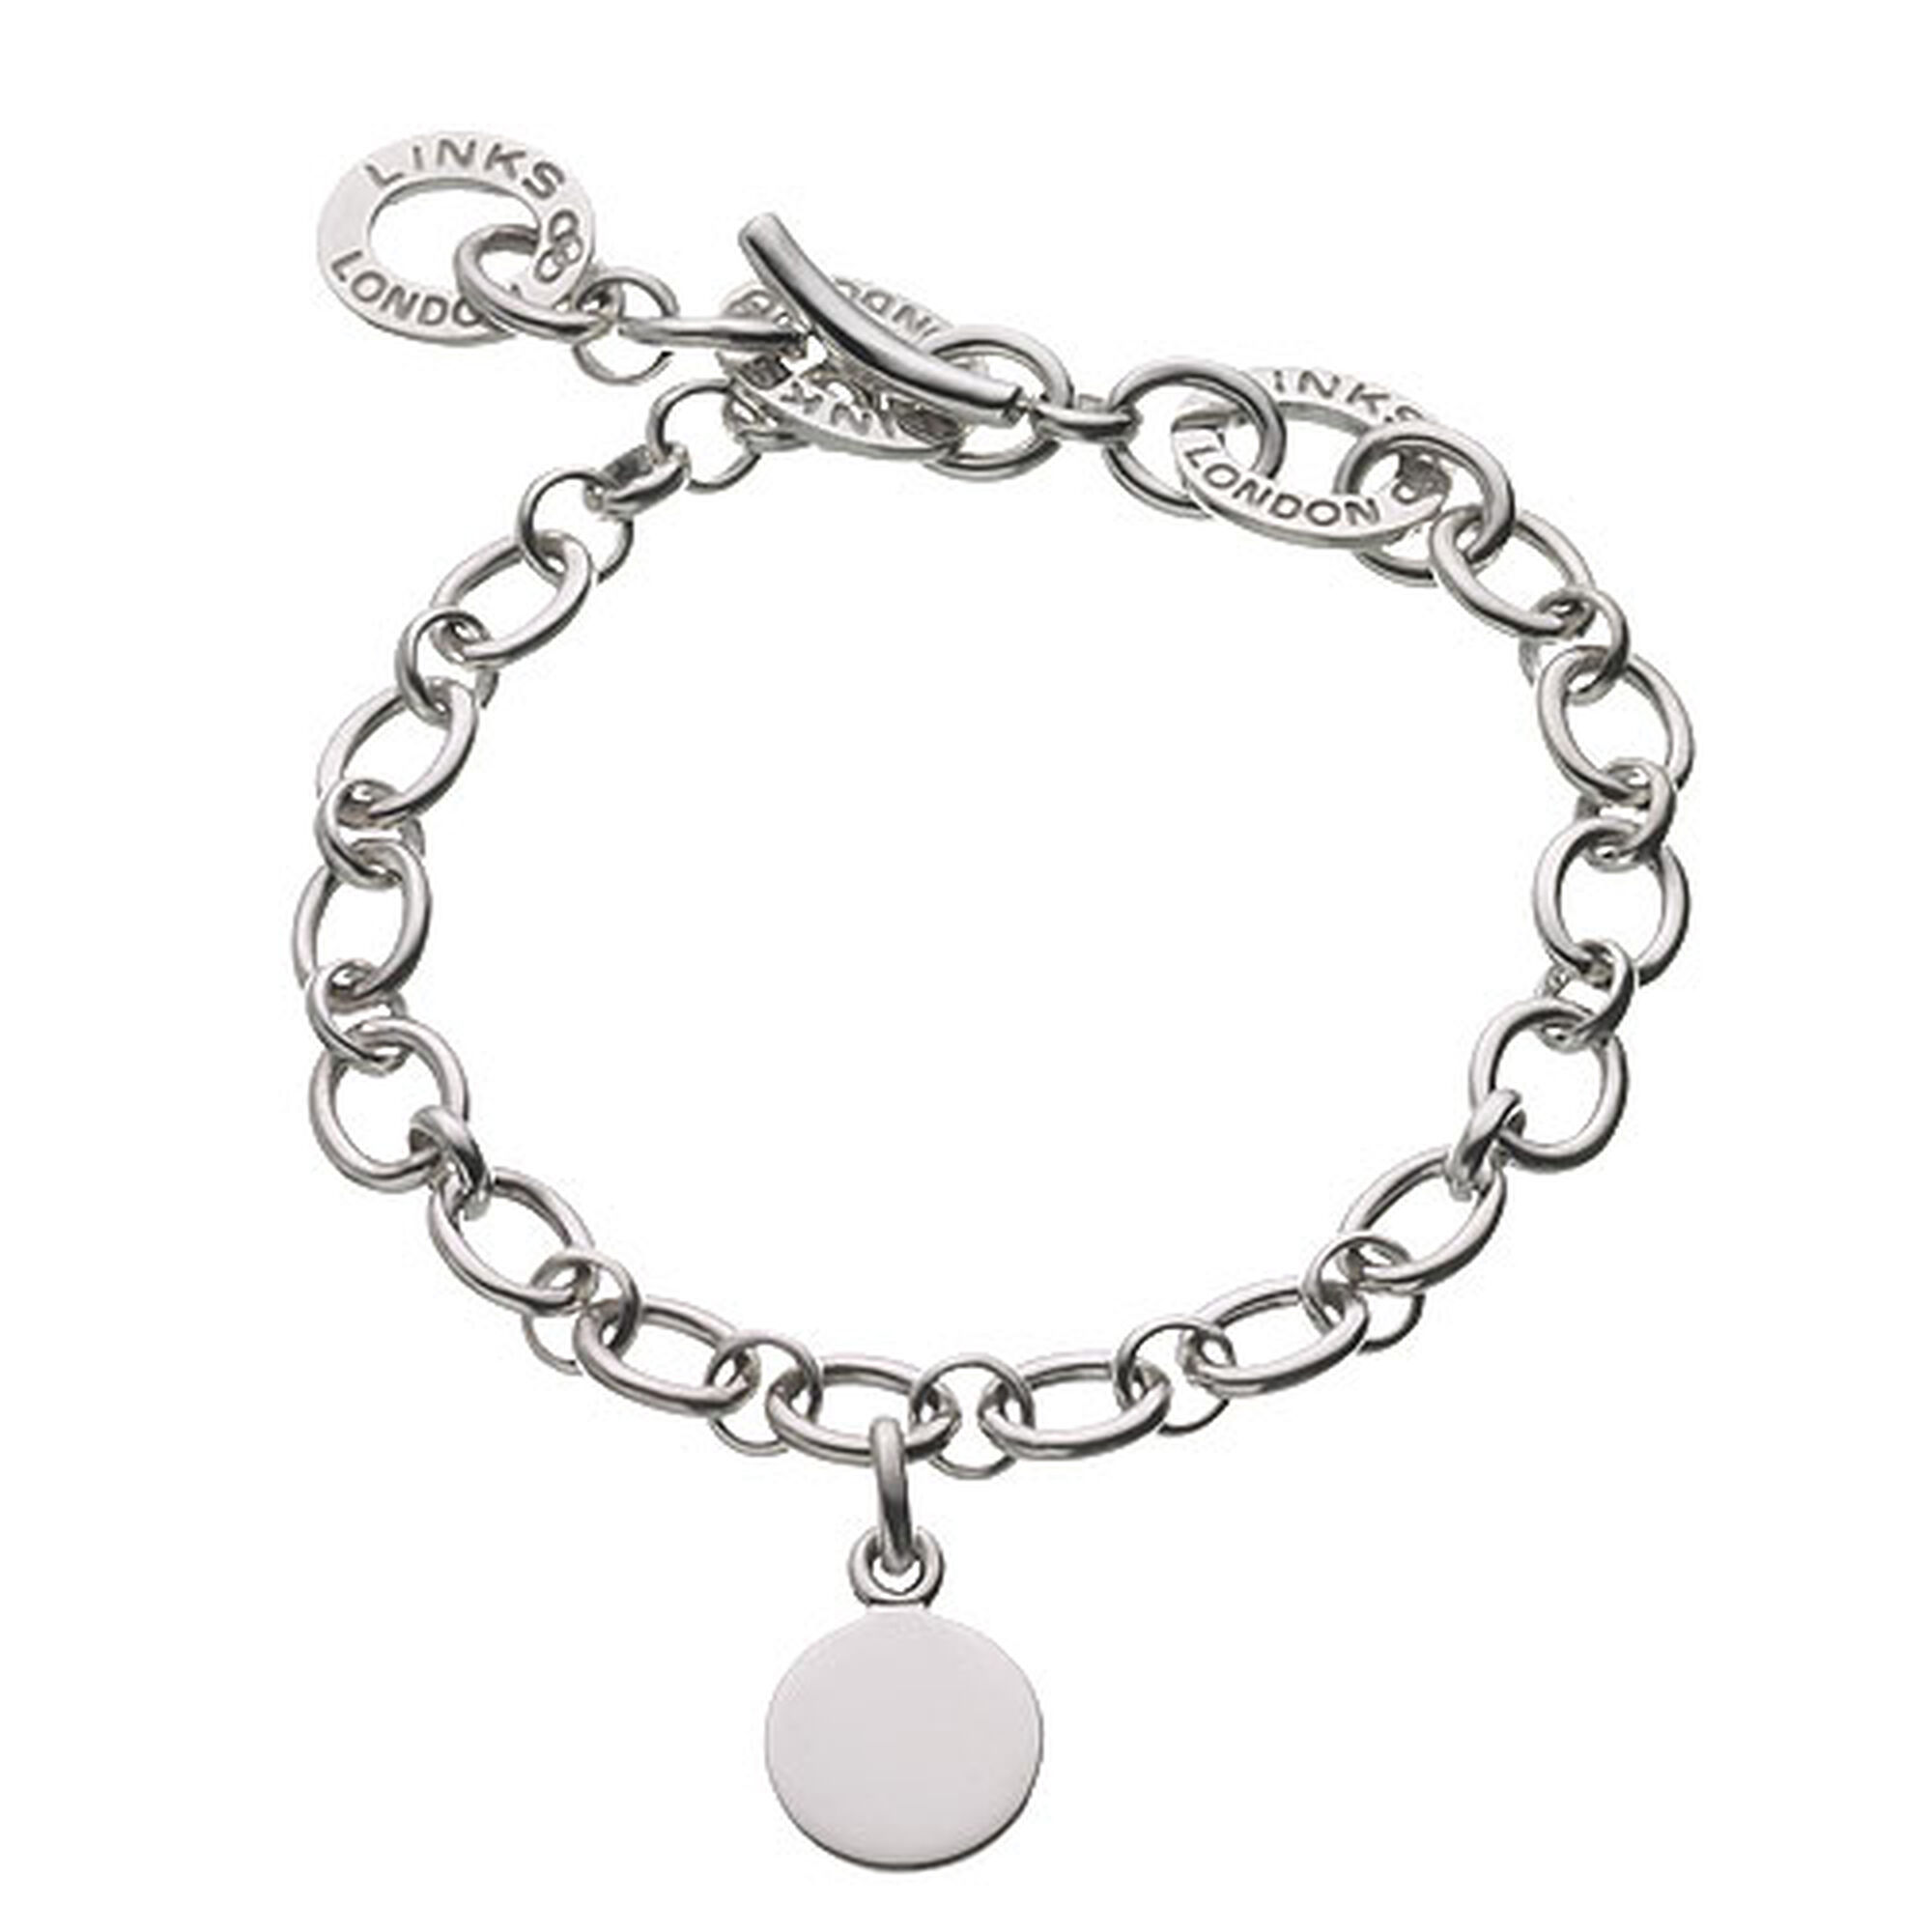 maid products of bracelet bracelets personalized charm bangles expandable bangle honor